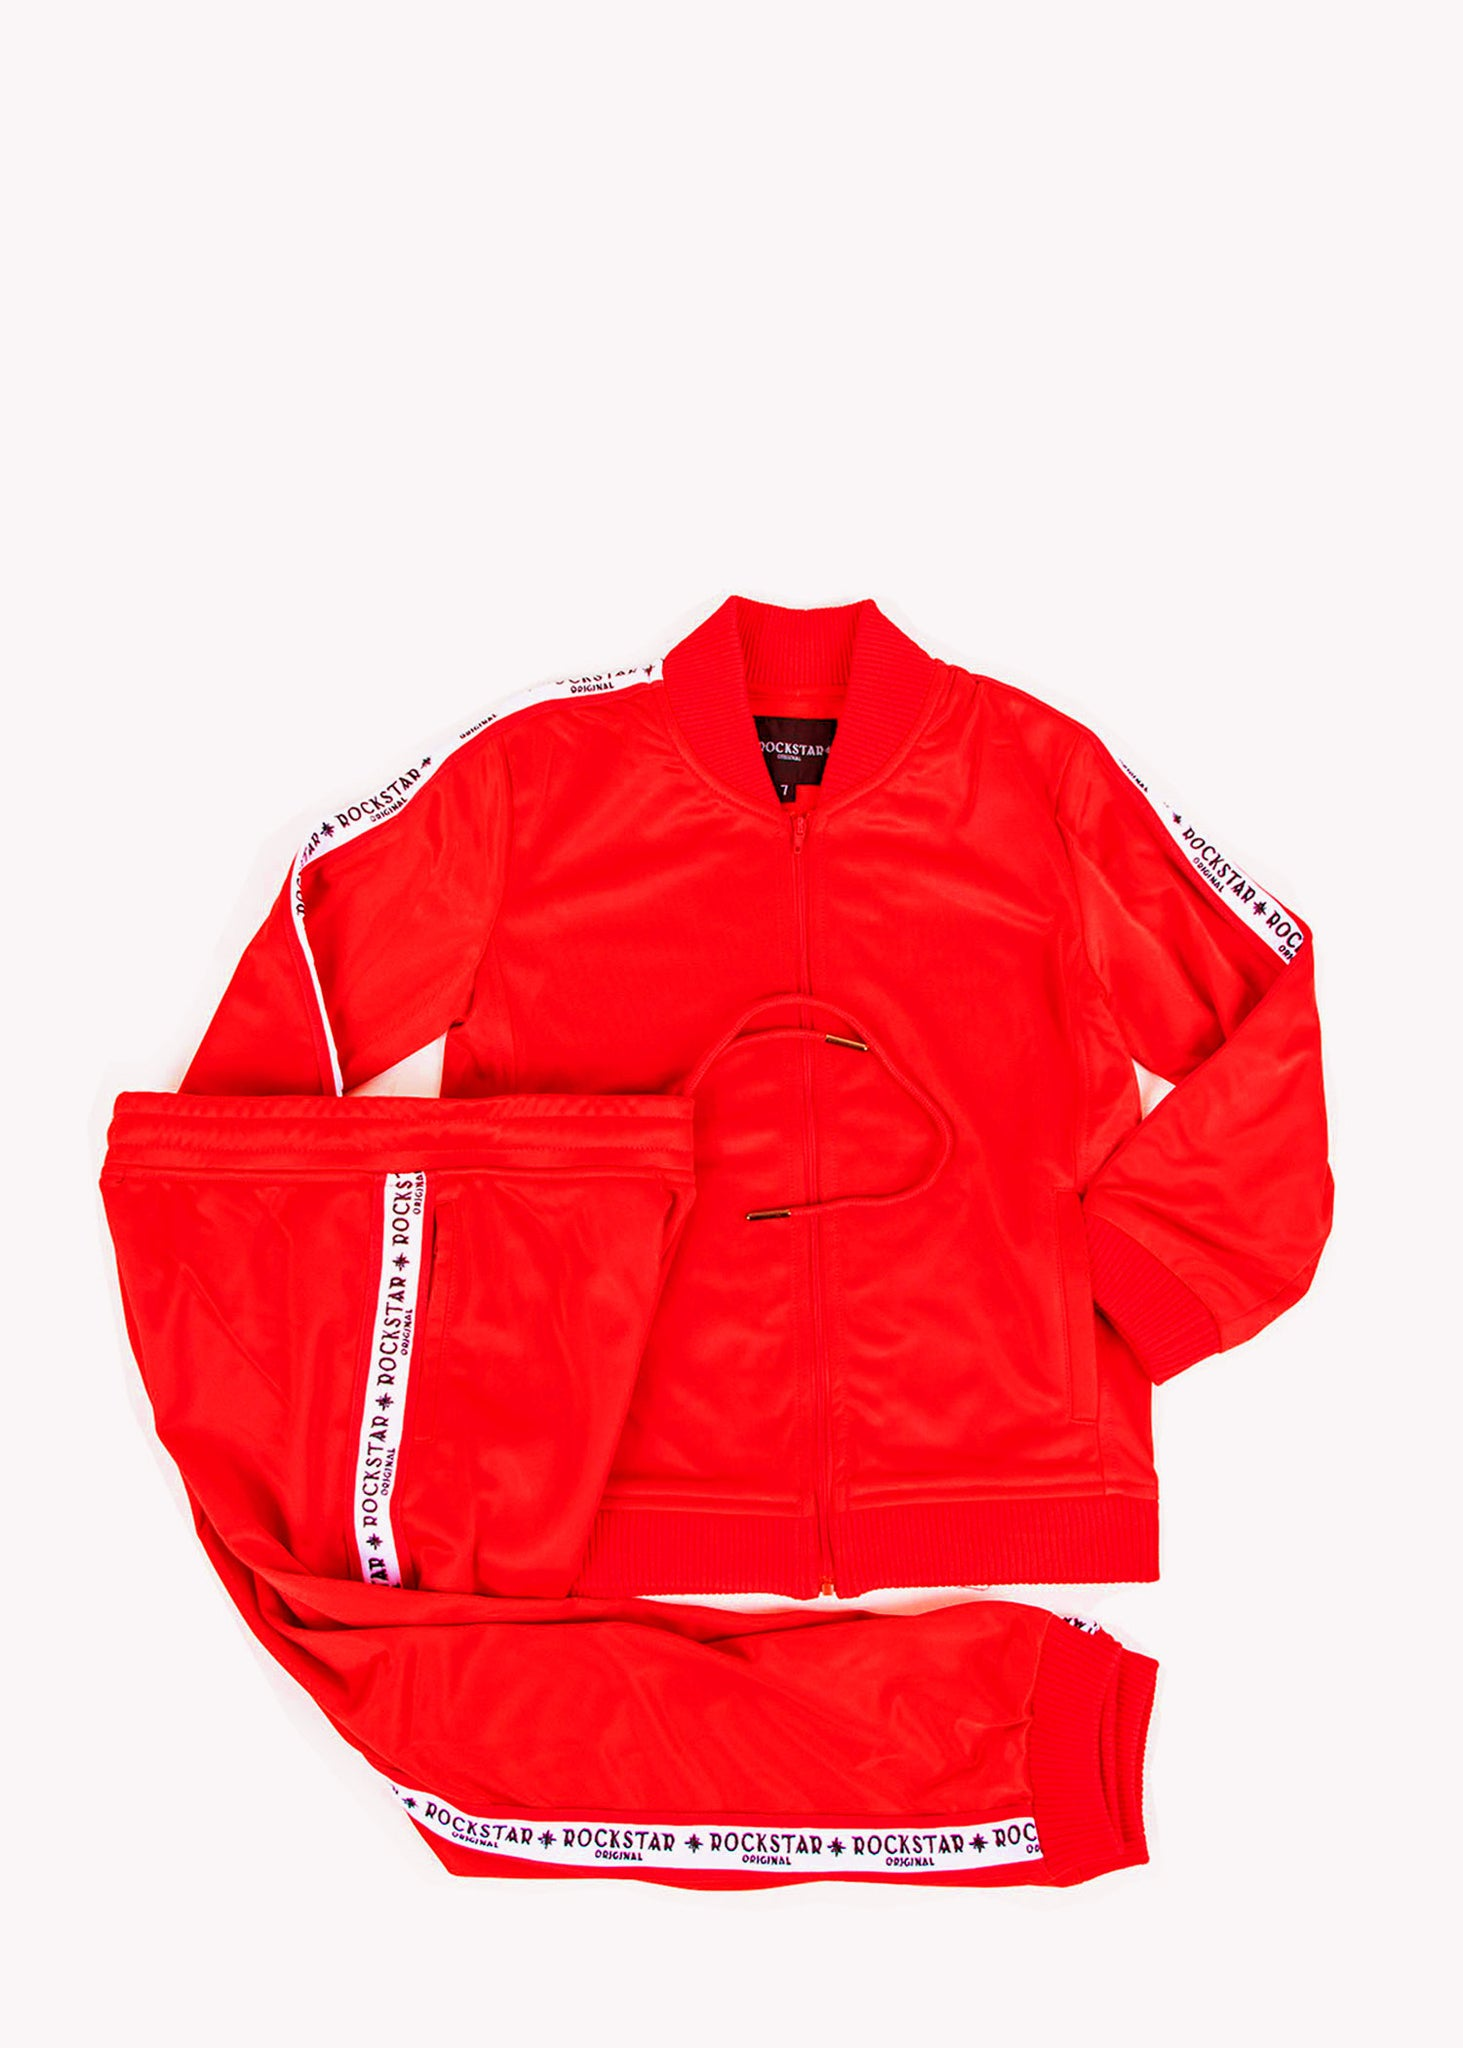 Kids Beck (Red) Track Suit